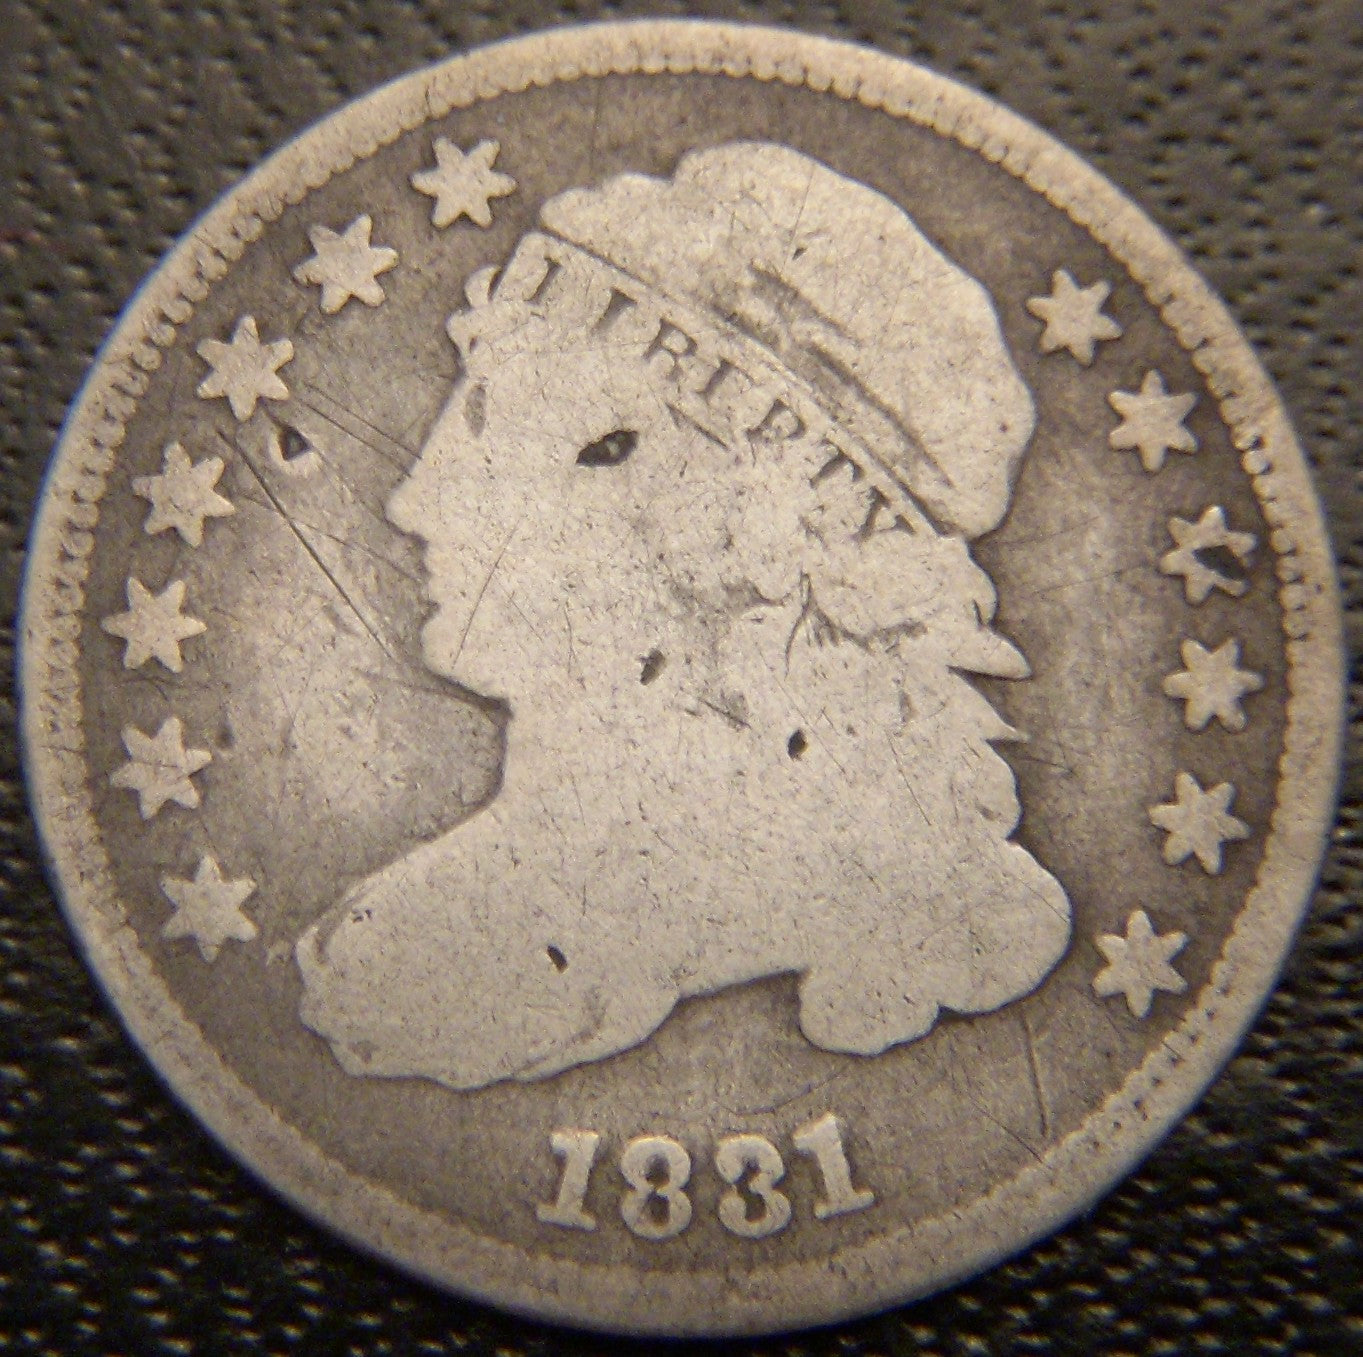 1831 Bust Dime - Very Good